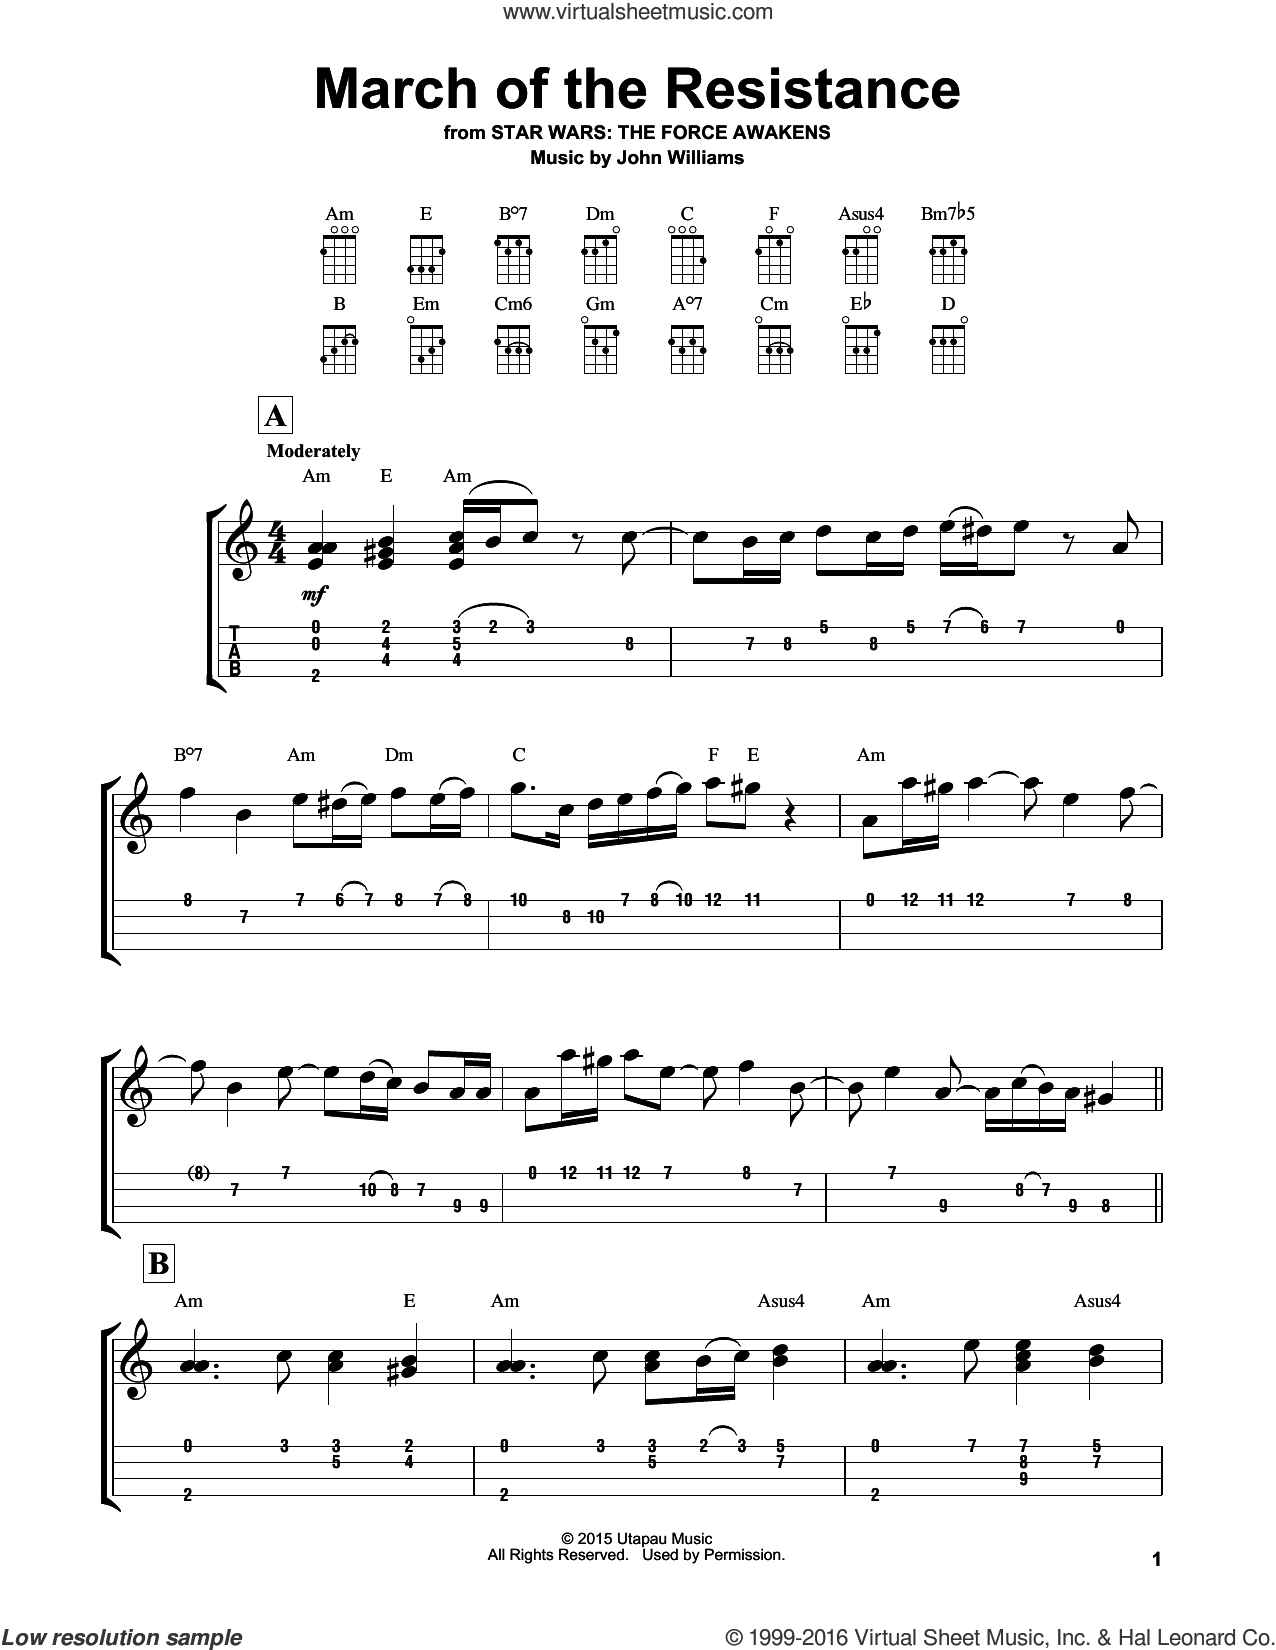 March Of The Resistance sheet music for ukulele by John Williams. Score Image Preview.